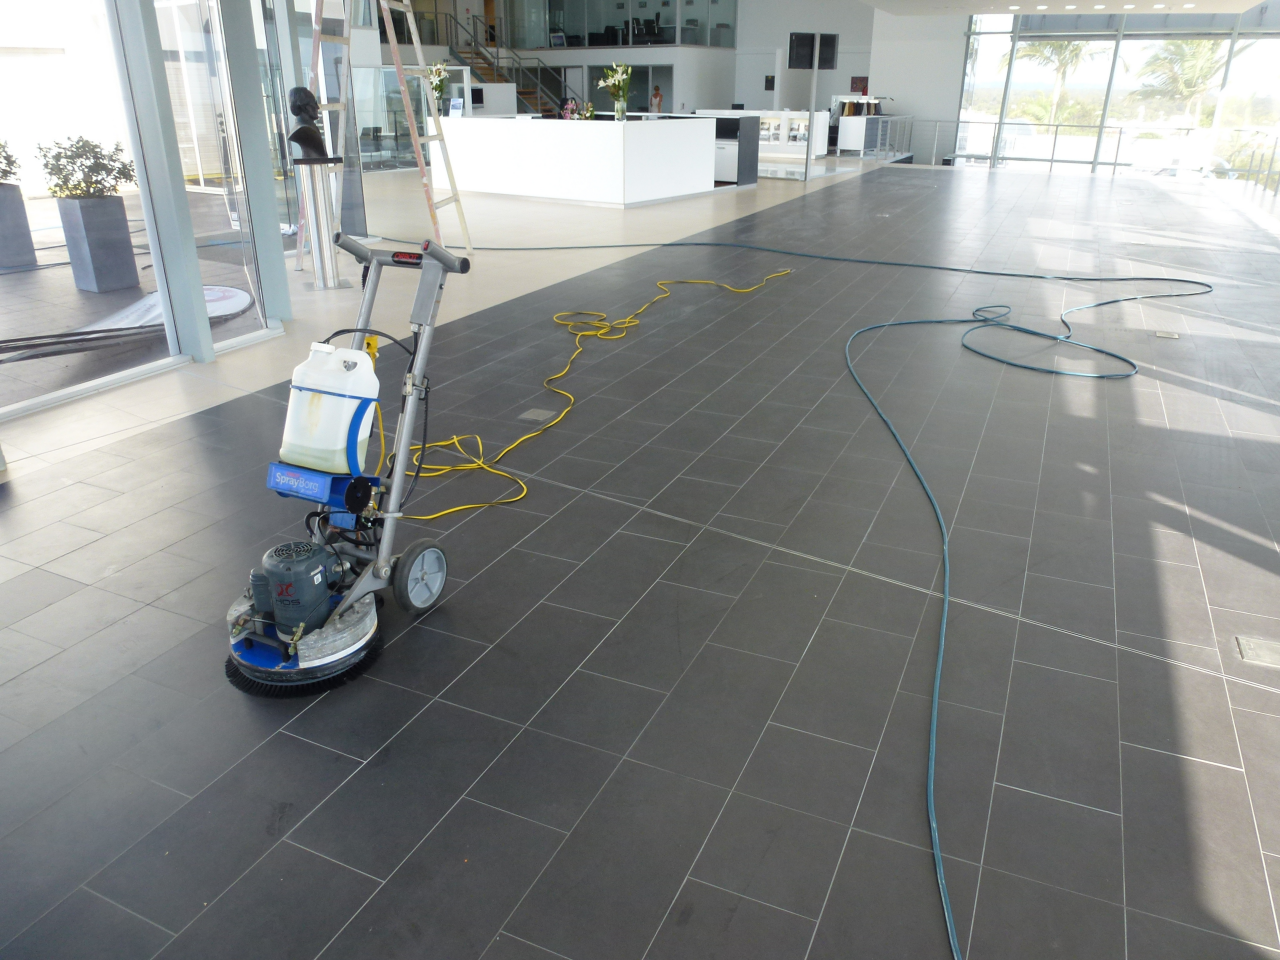 Stunning How Do You Clean Porcelain Tile Floors Images